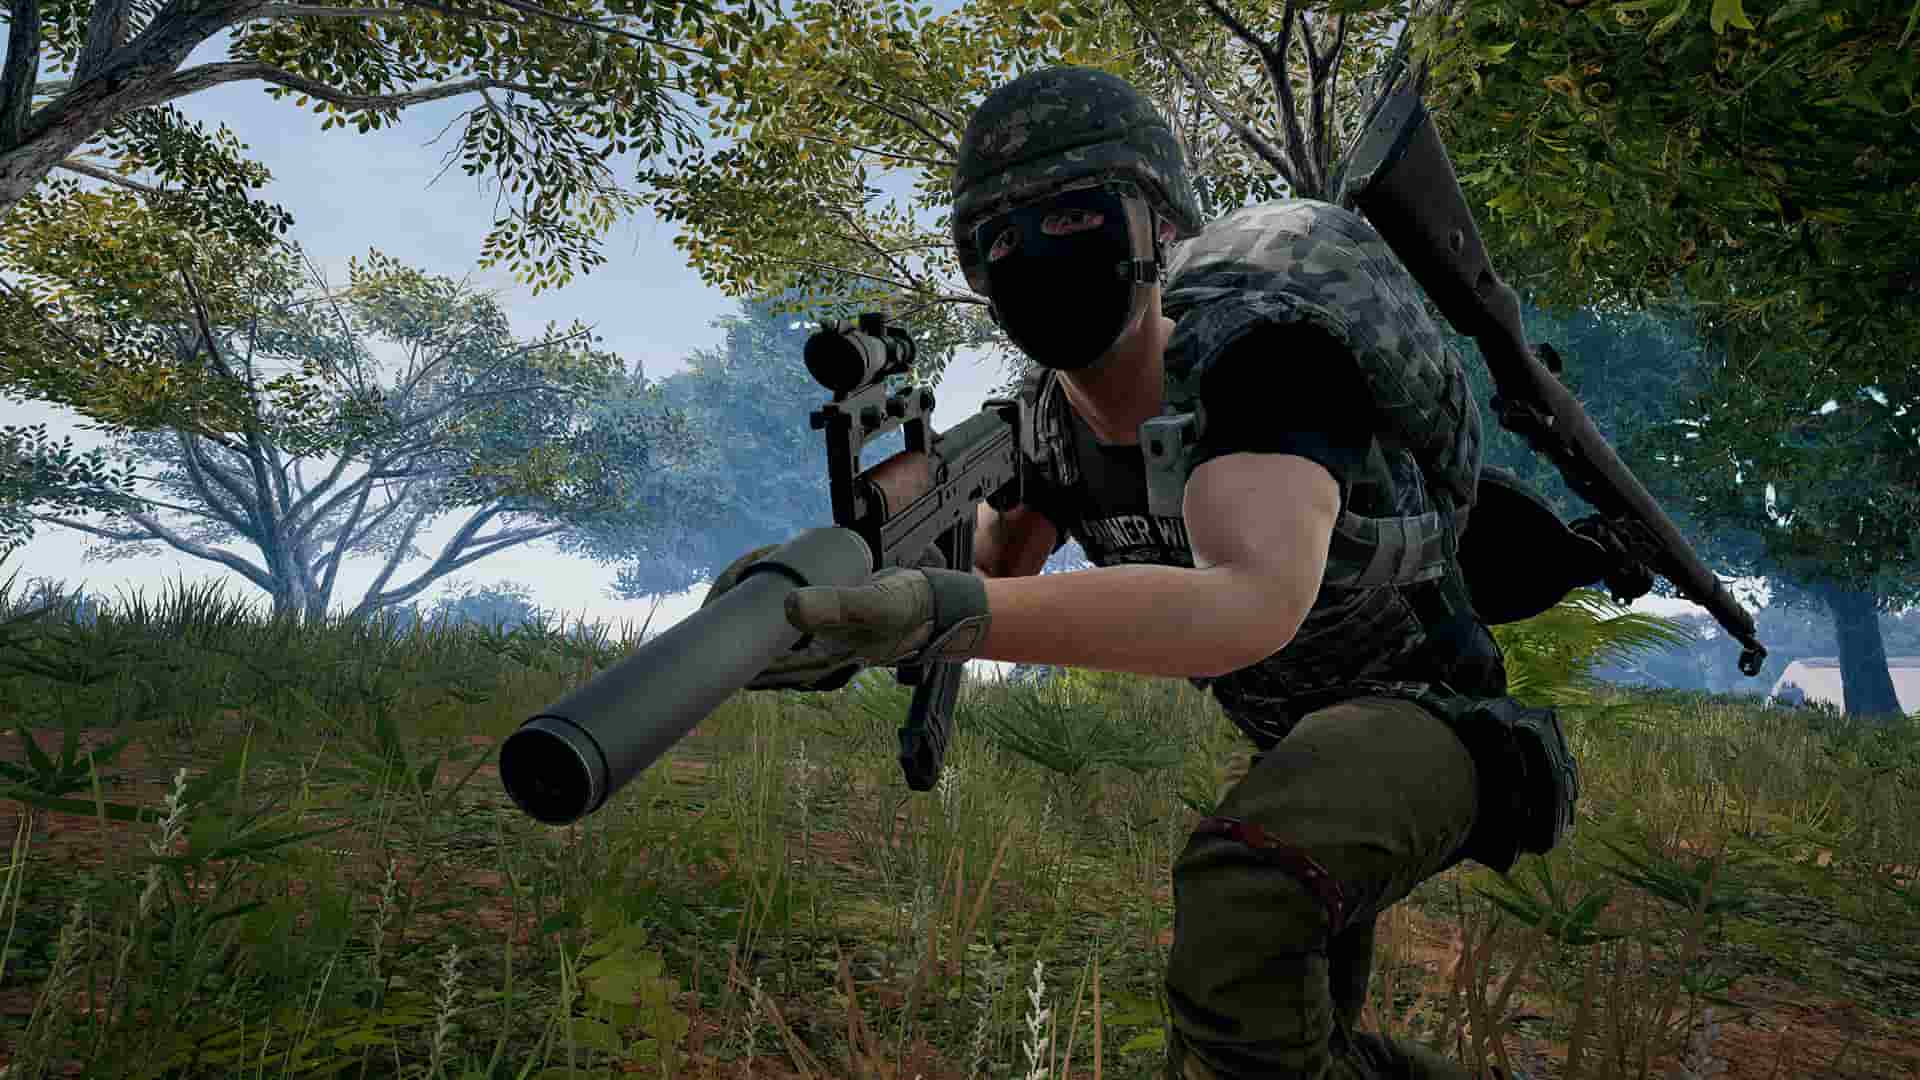 Pubg S Custom Mode Is Free For Now: Next PUBG Sanhok Testing Phase Happening May 10, Open To